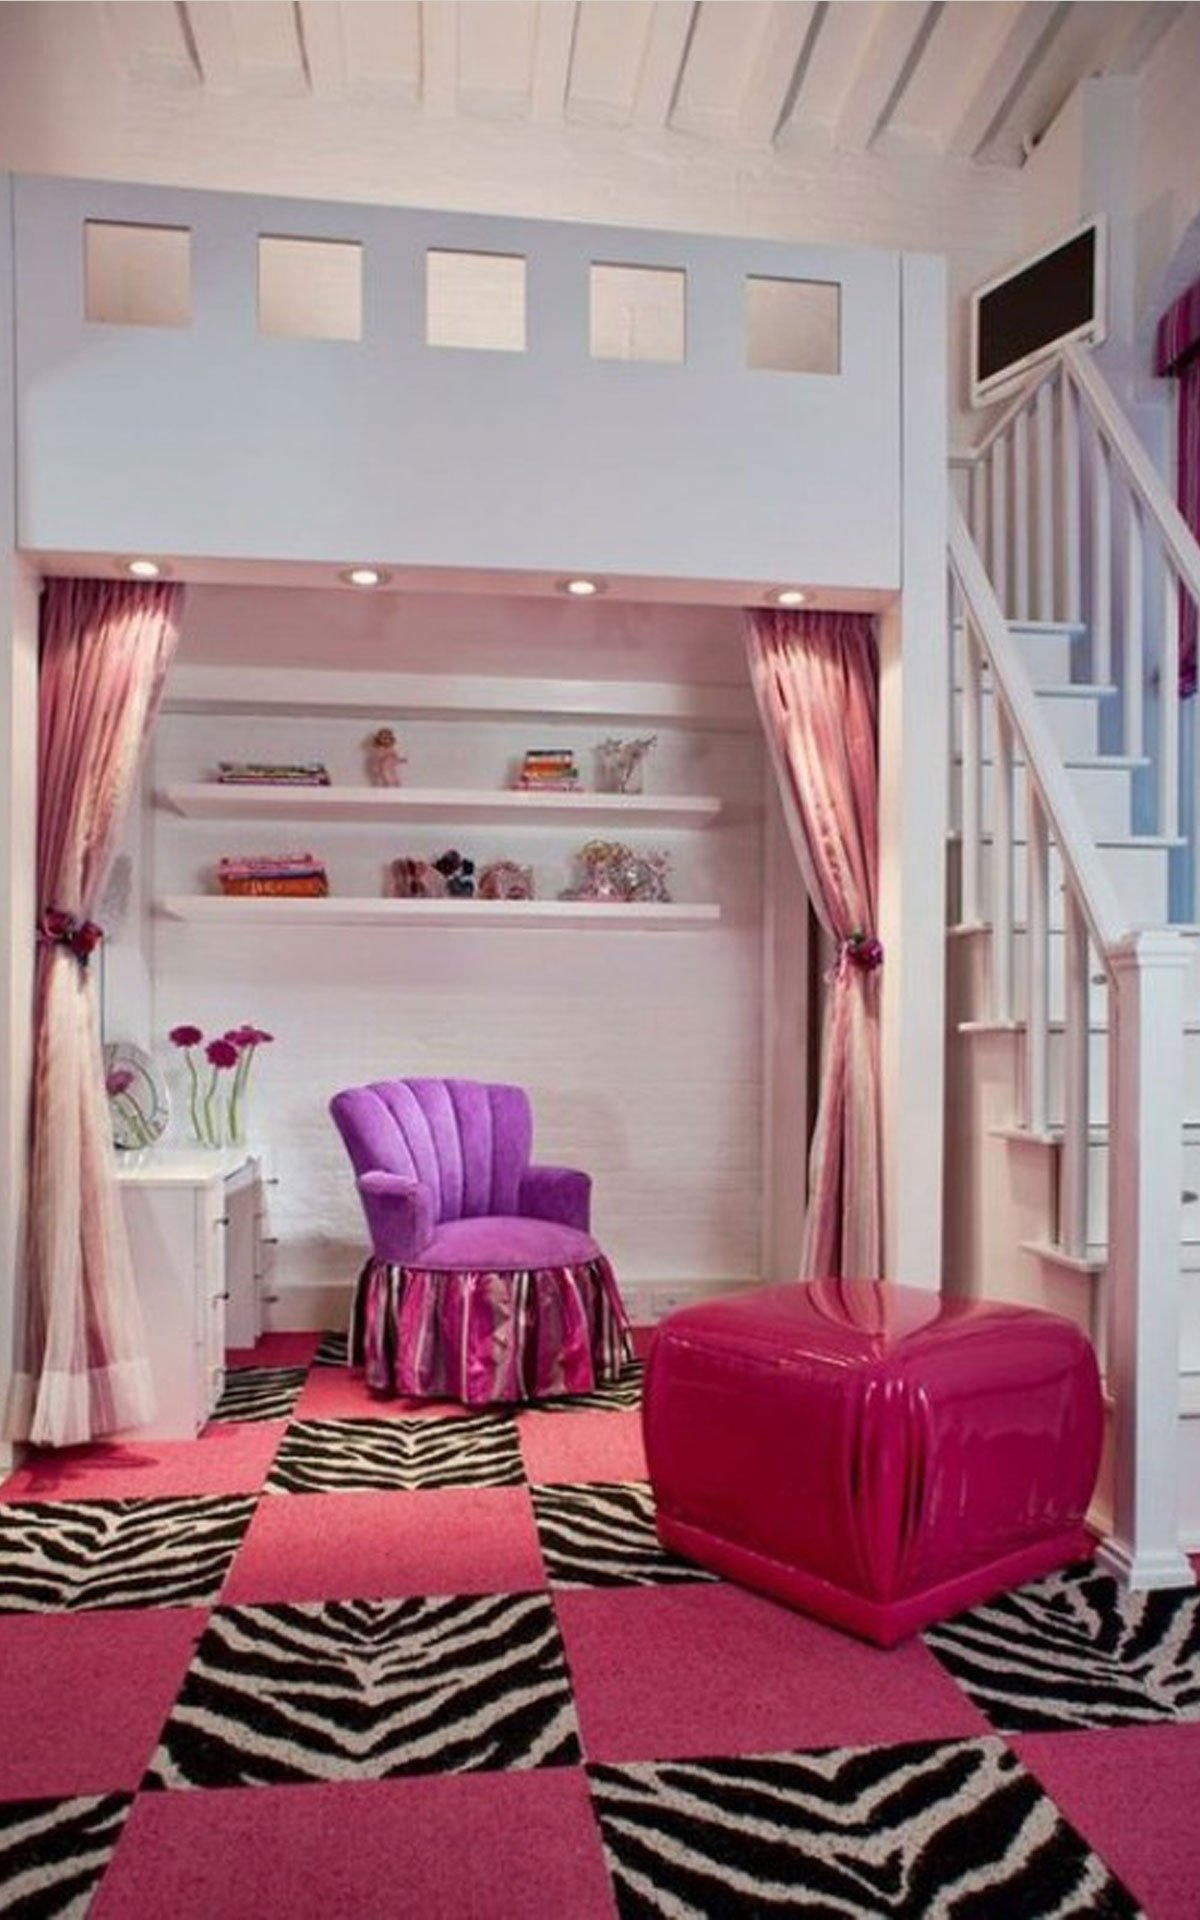 10 Fantastic Room Ideas For Teenage Girls idea cute girl room ideas unique cool bedroom designs home and with